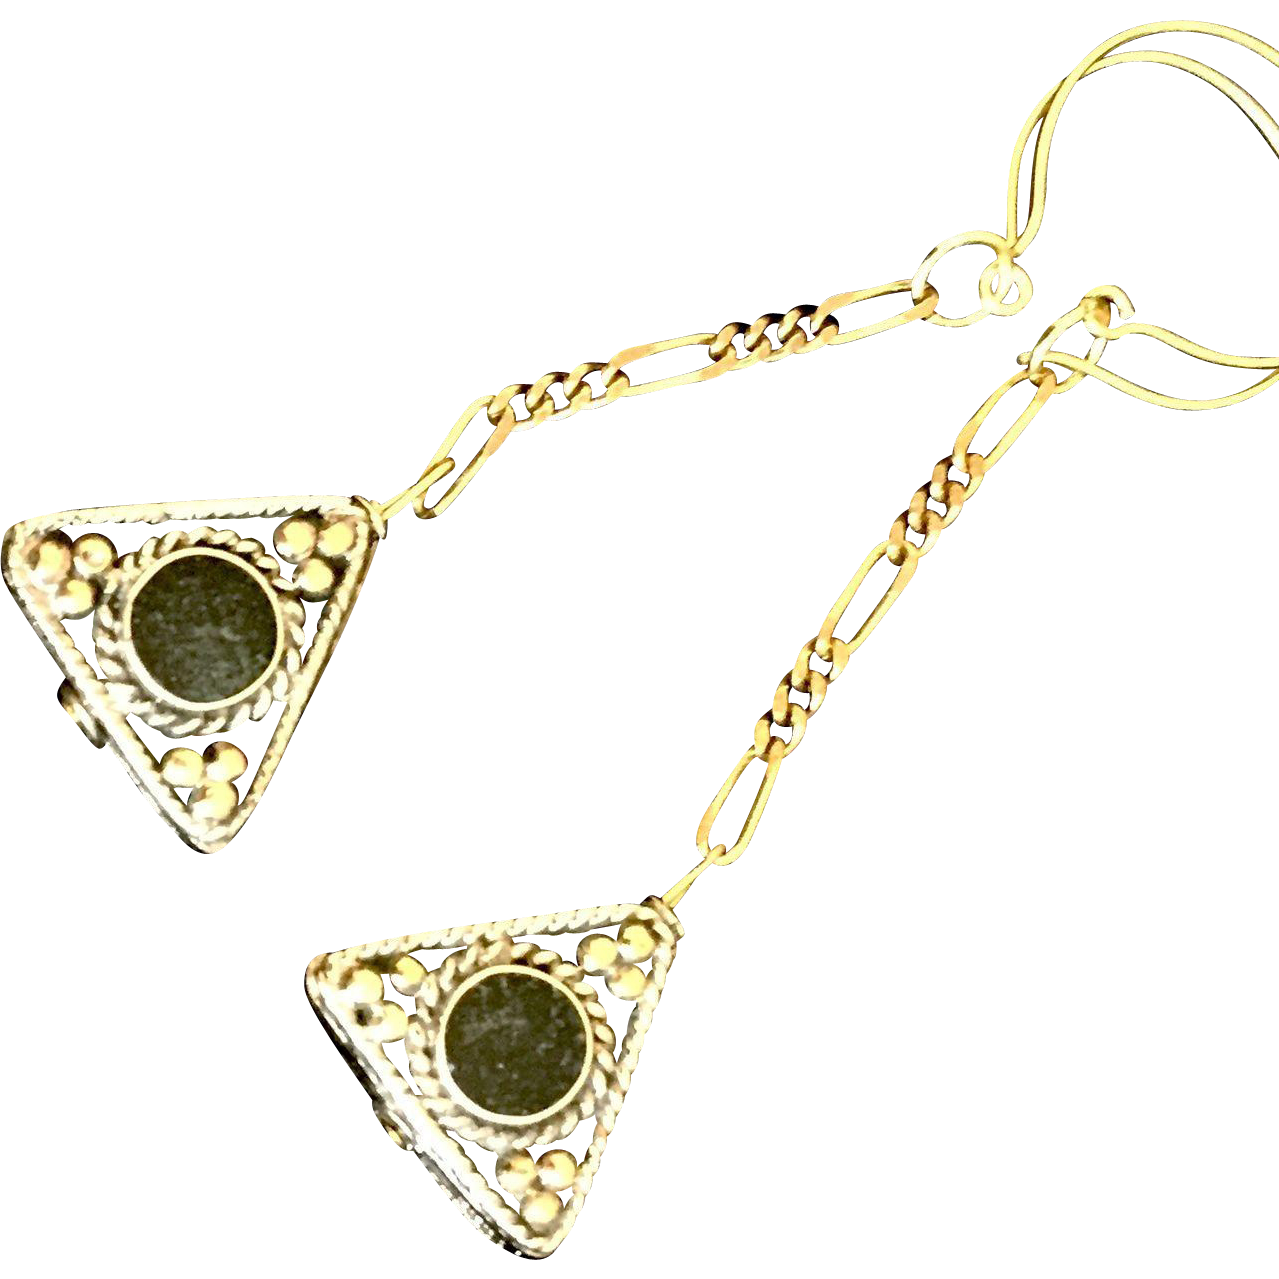 brass black onyx triangle dangle earrings 3 1 4 inches from auraeanaoriginals on ruby lane. Black Bedroom Furniture Sets. Home Design Ideas